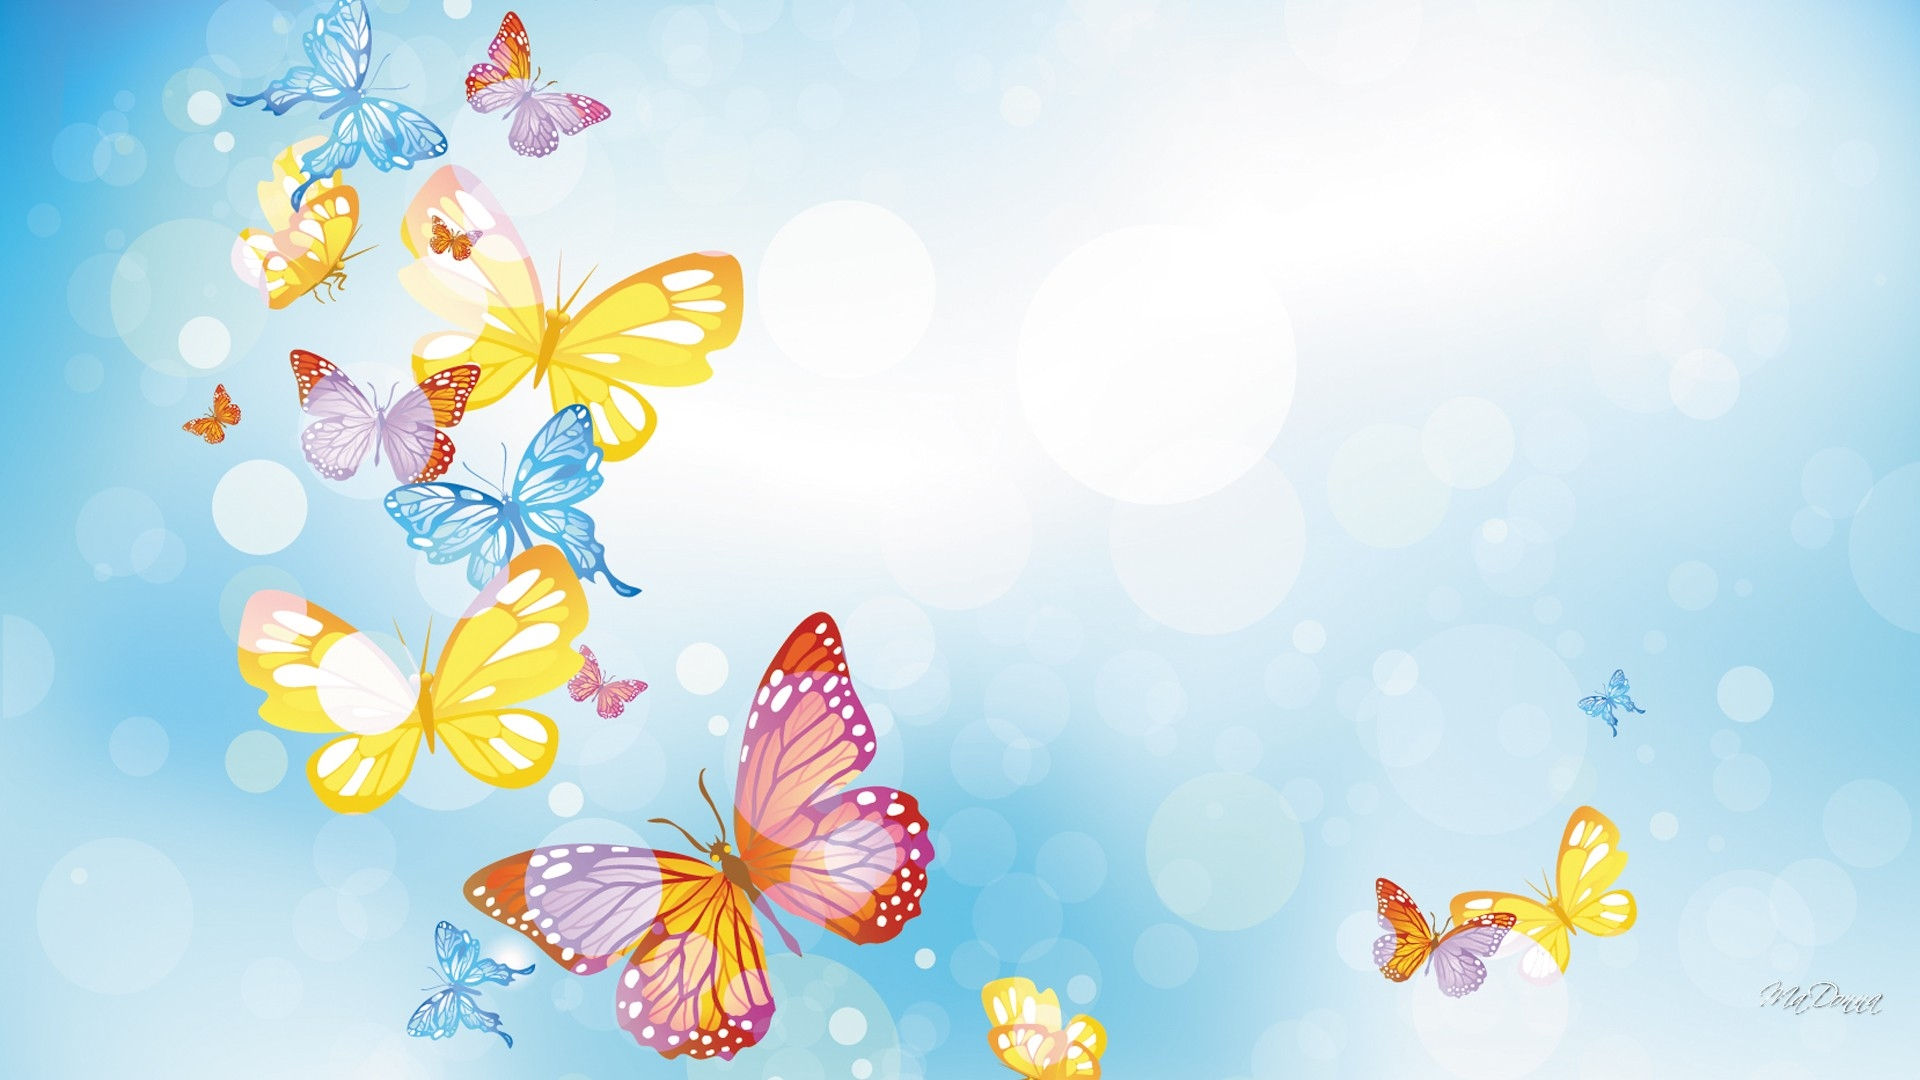 Butterflies Wallpapers Hd Download: Butterflies Wallpapers